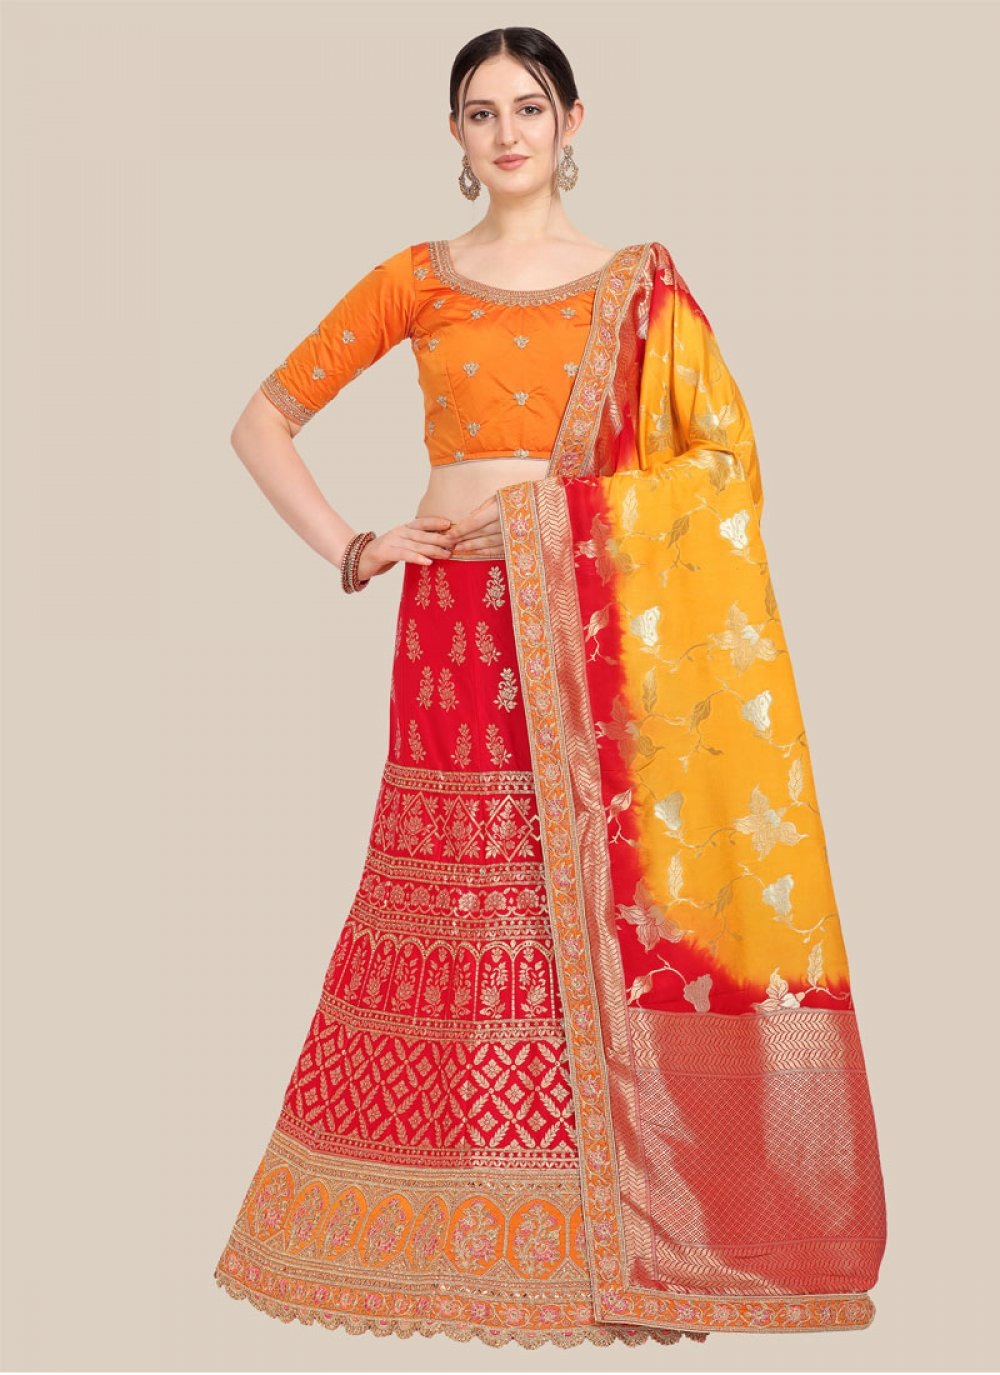 Embroidered Jacquard Lehenga Choli